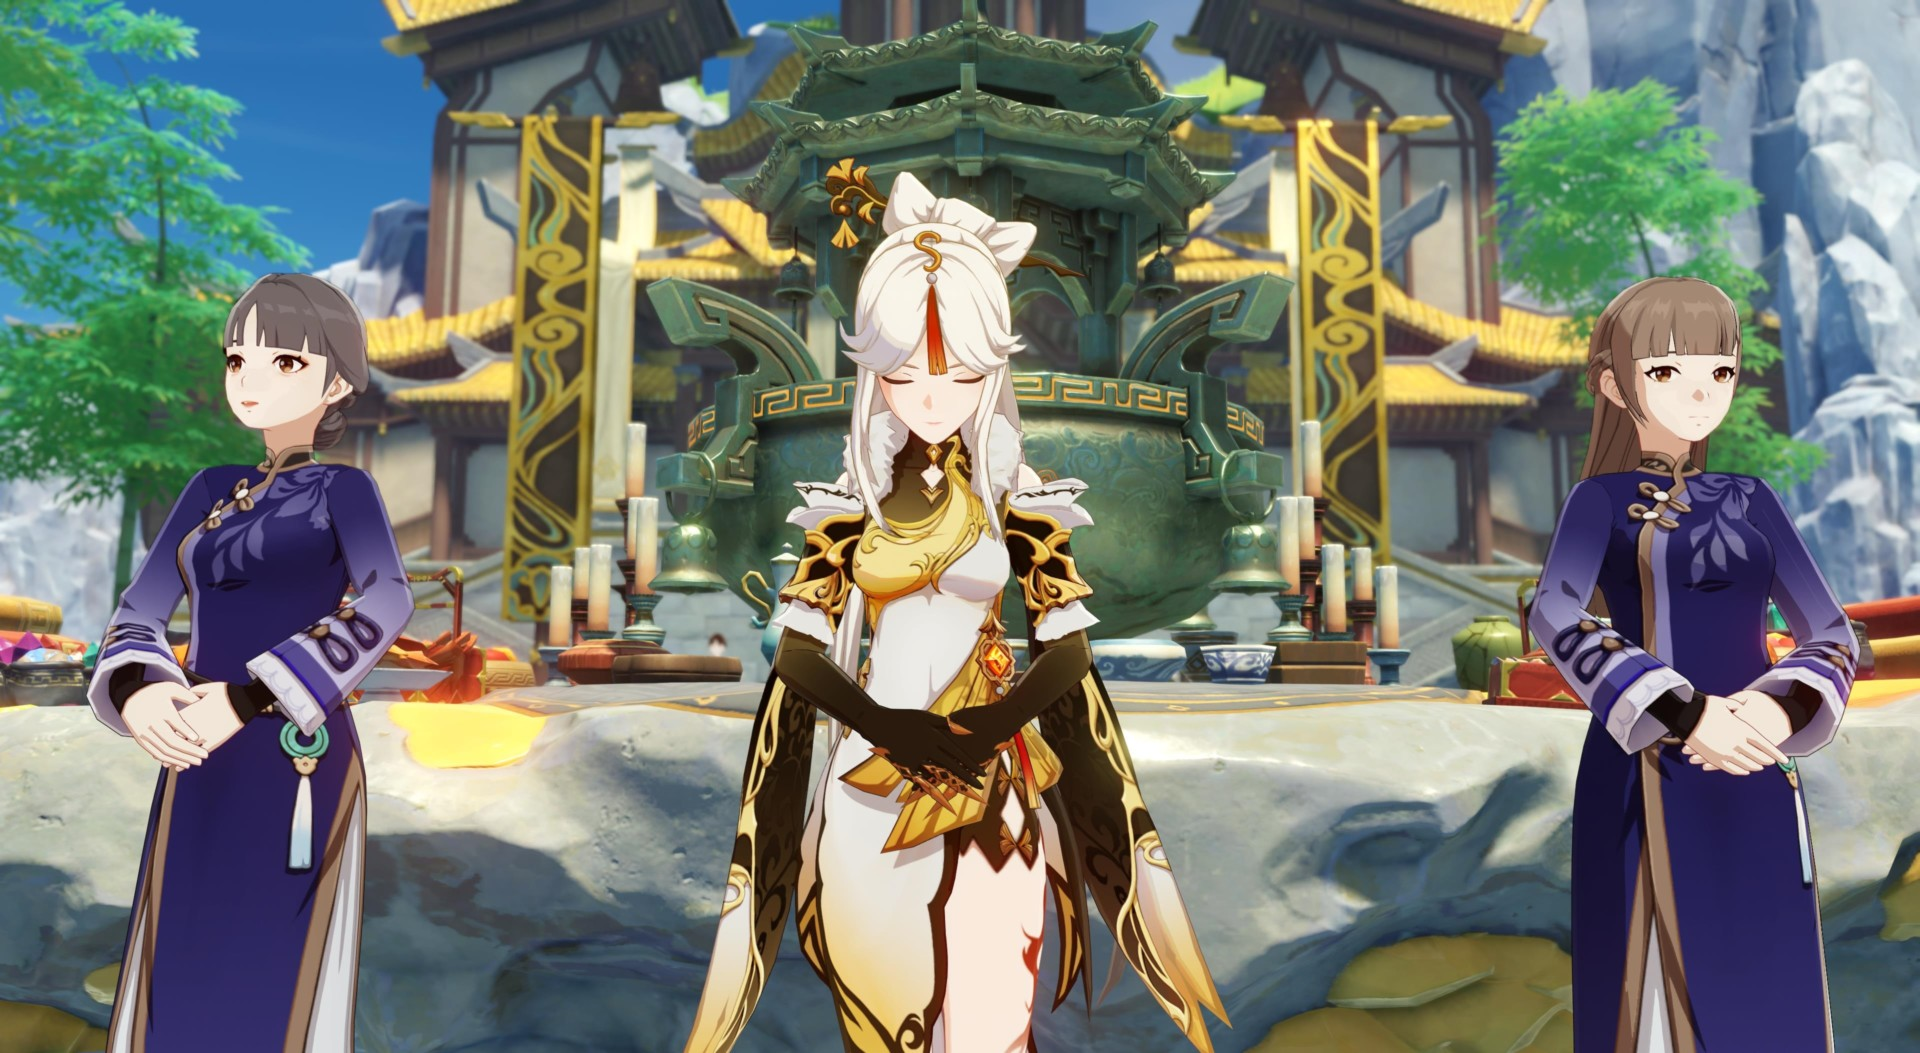 Genshin Impact guide: The Rite of Descension main quest in Liyue